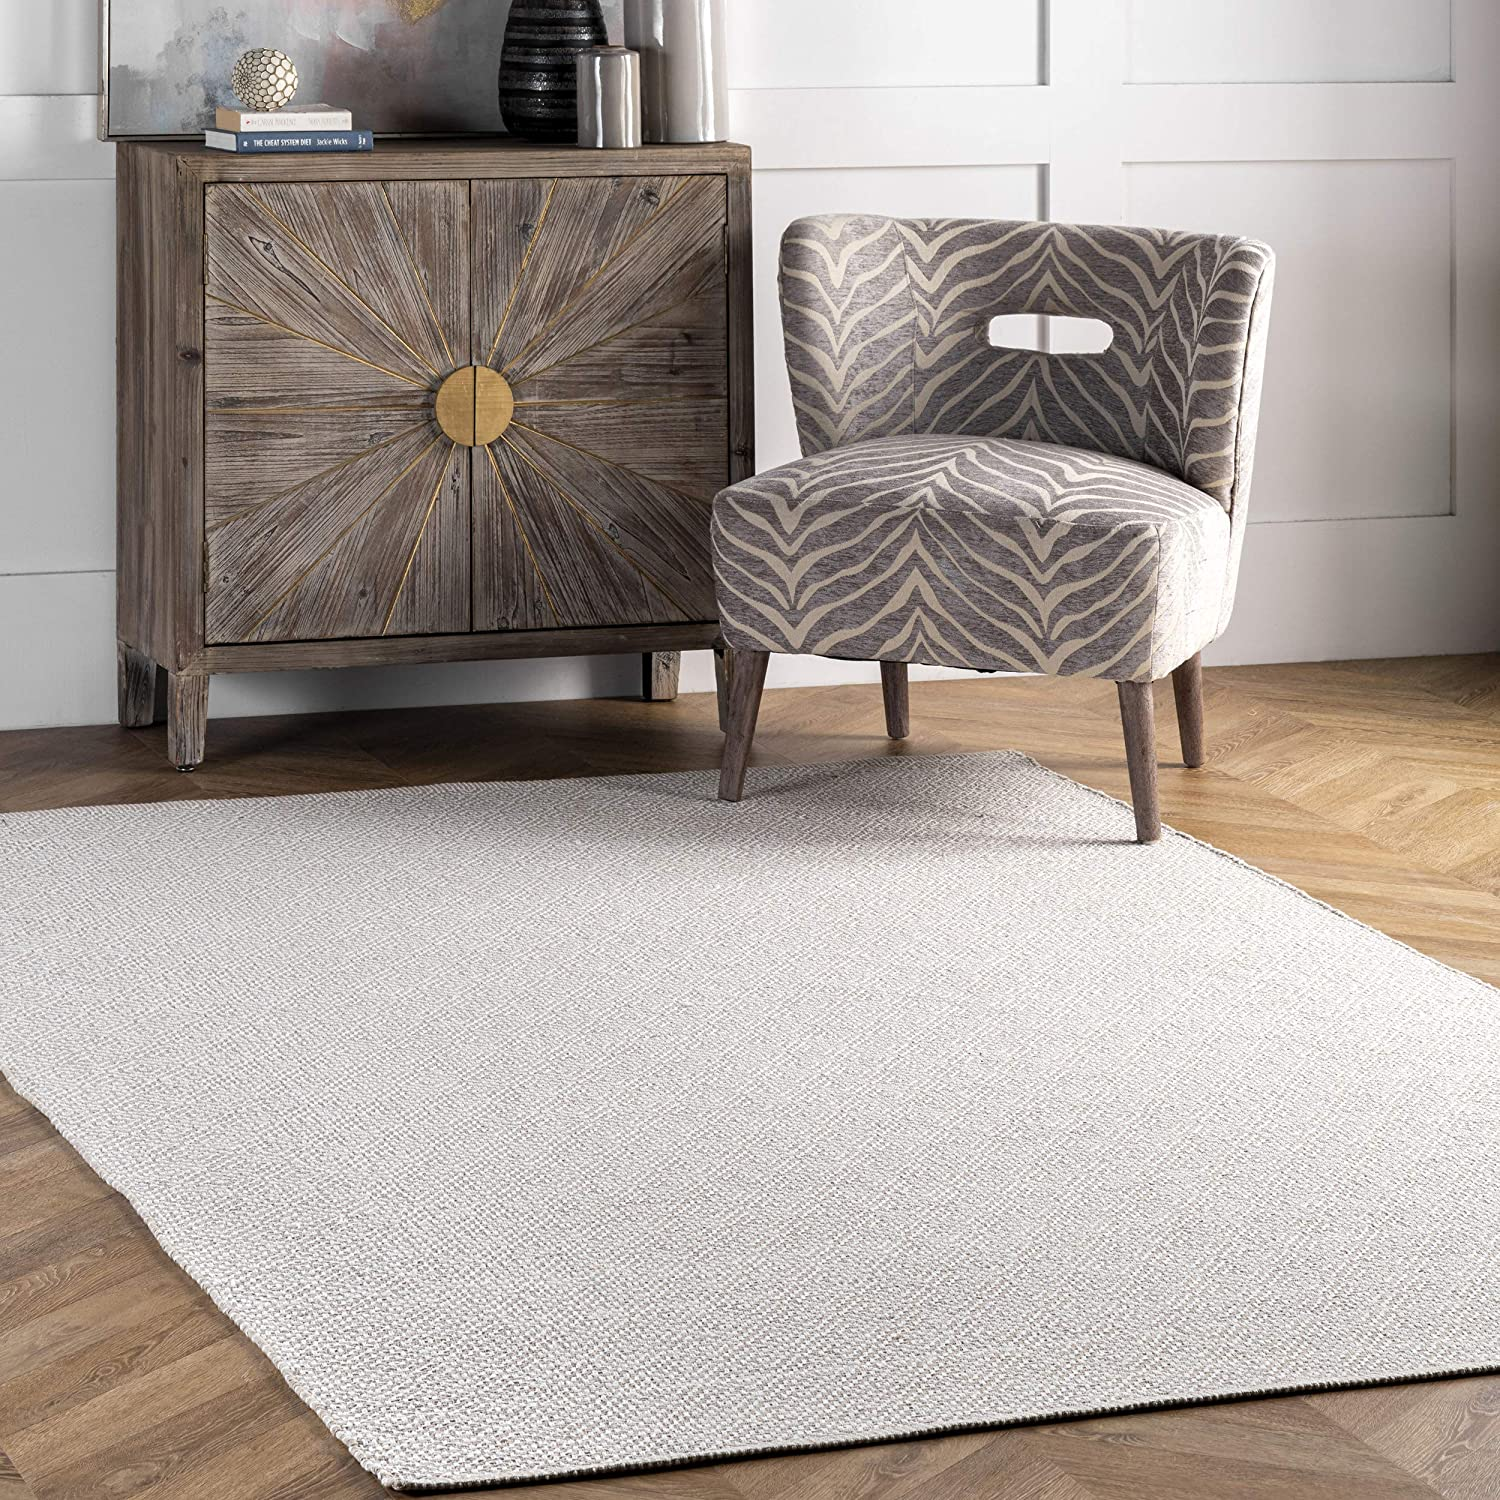 Nuloom Contemporary Check Flatwoven Area Rug Taupe 5 X 8 Feet Amazon Co Uk Kitchen Home